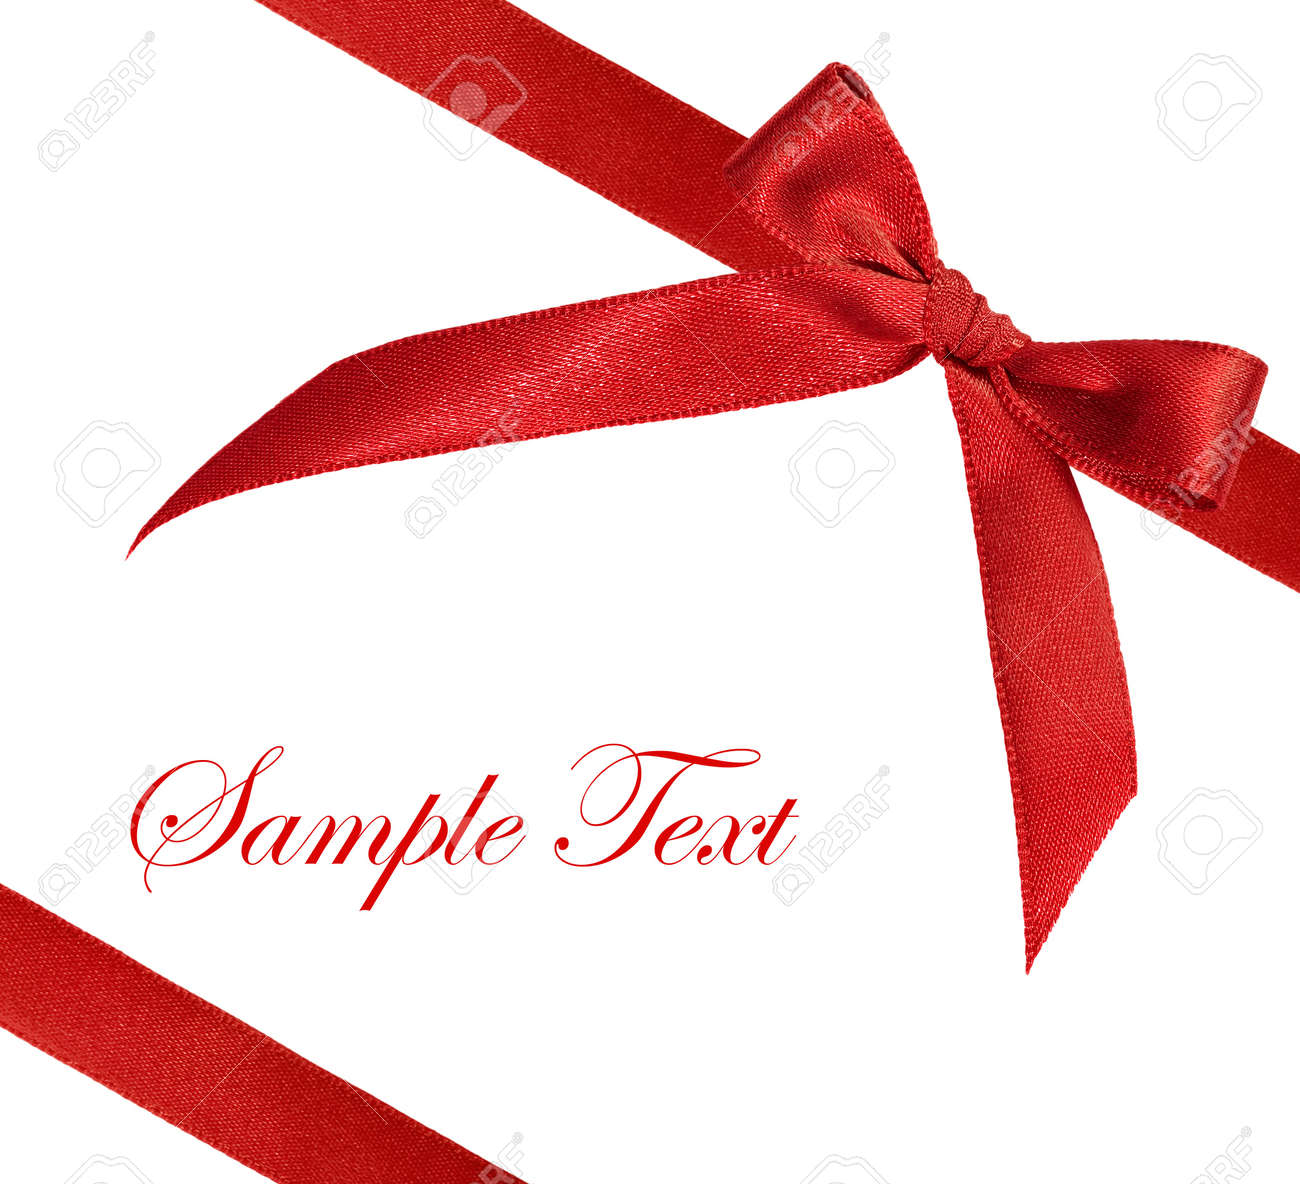 Black White And Red Background Images Red Ribbon on White Background